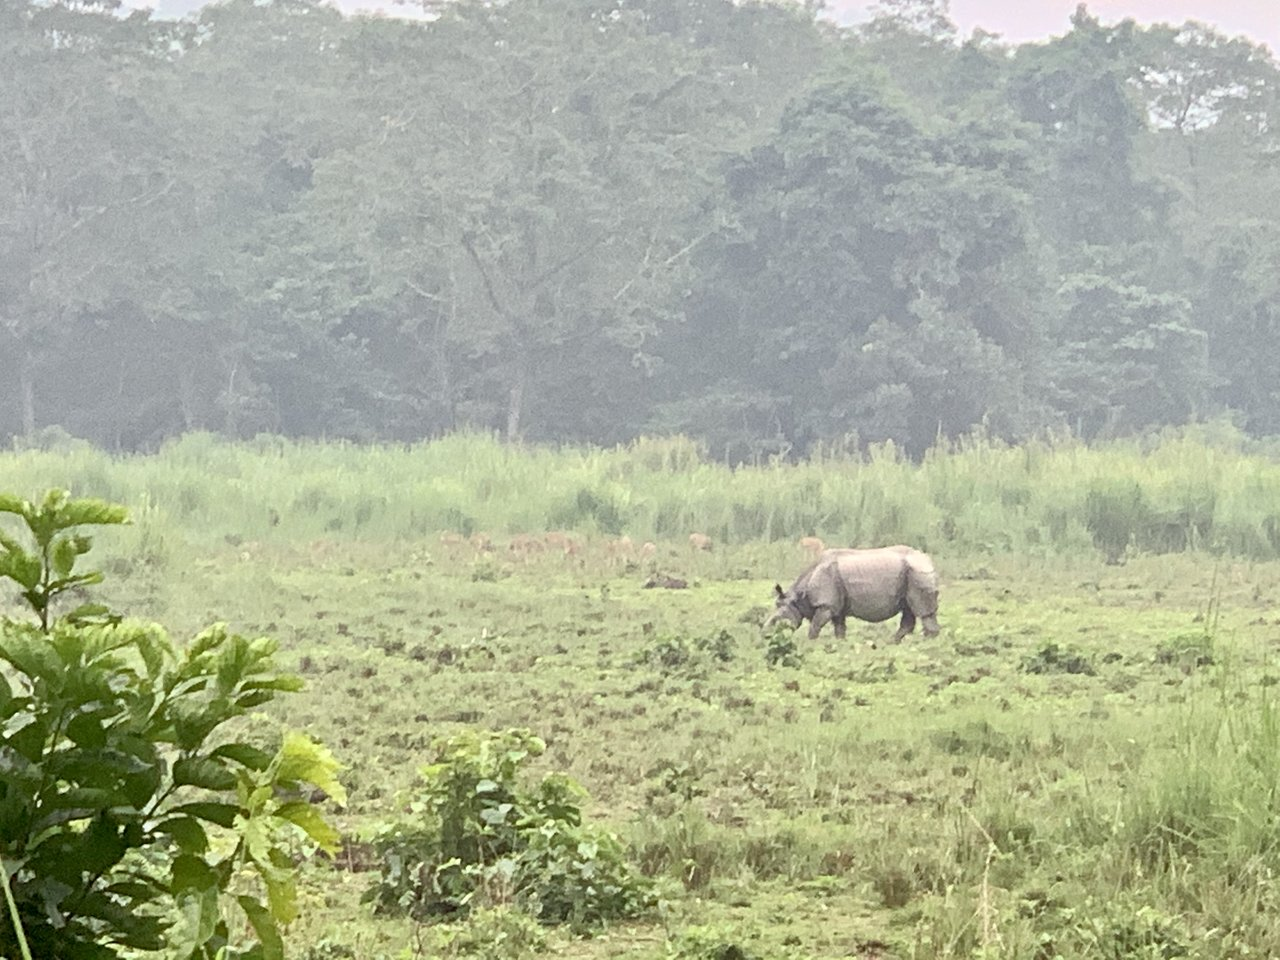 a one-horned rhino and a group of spotted deer   Photo taken by Caroline R